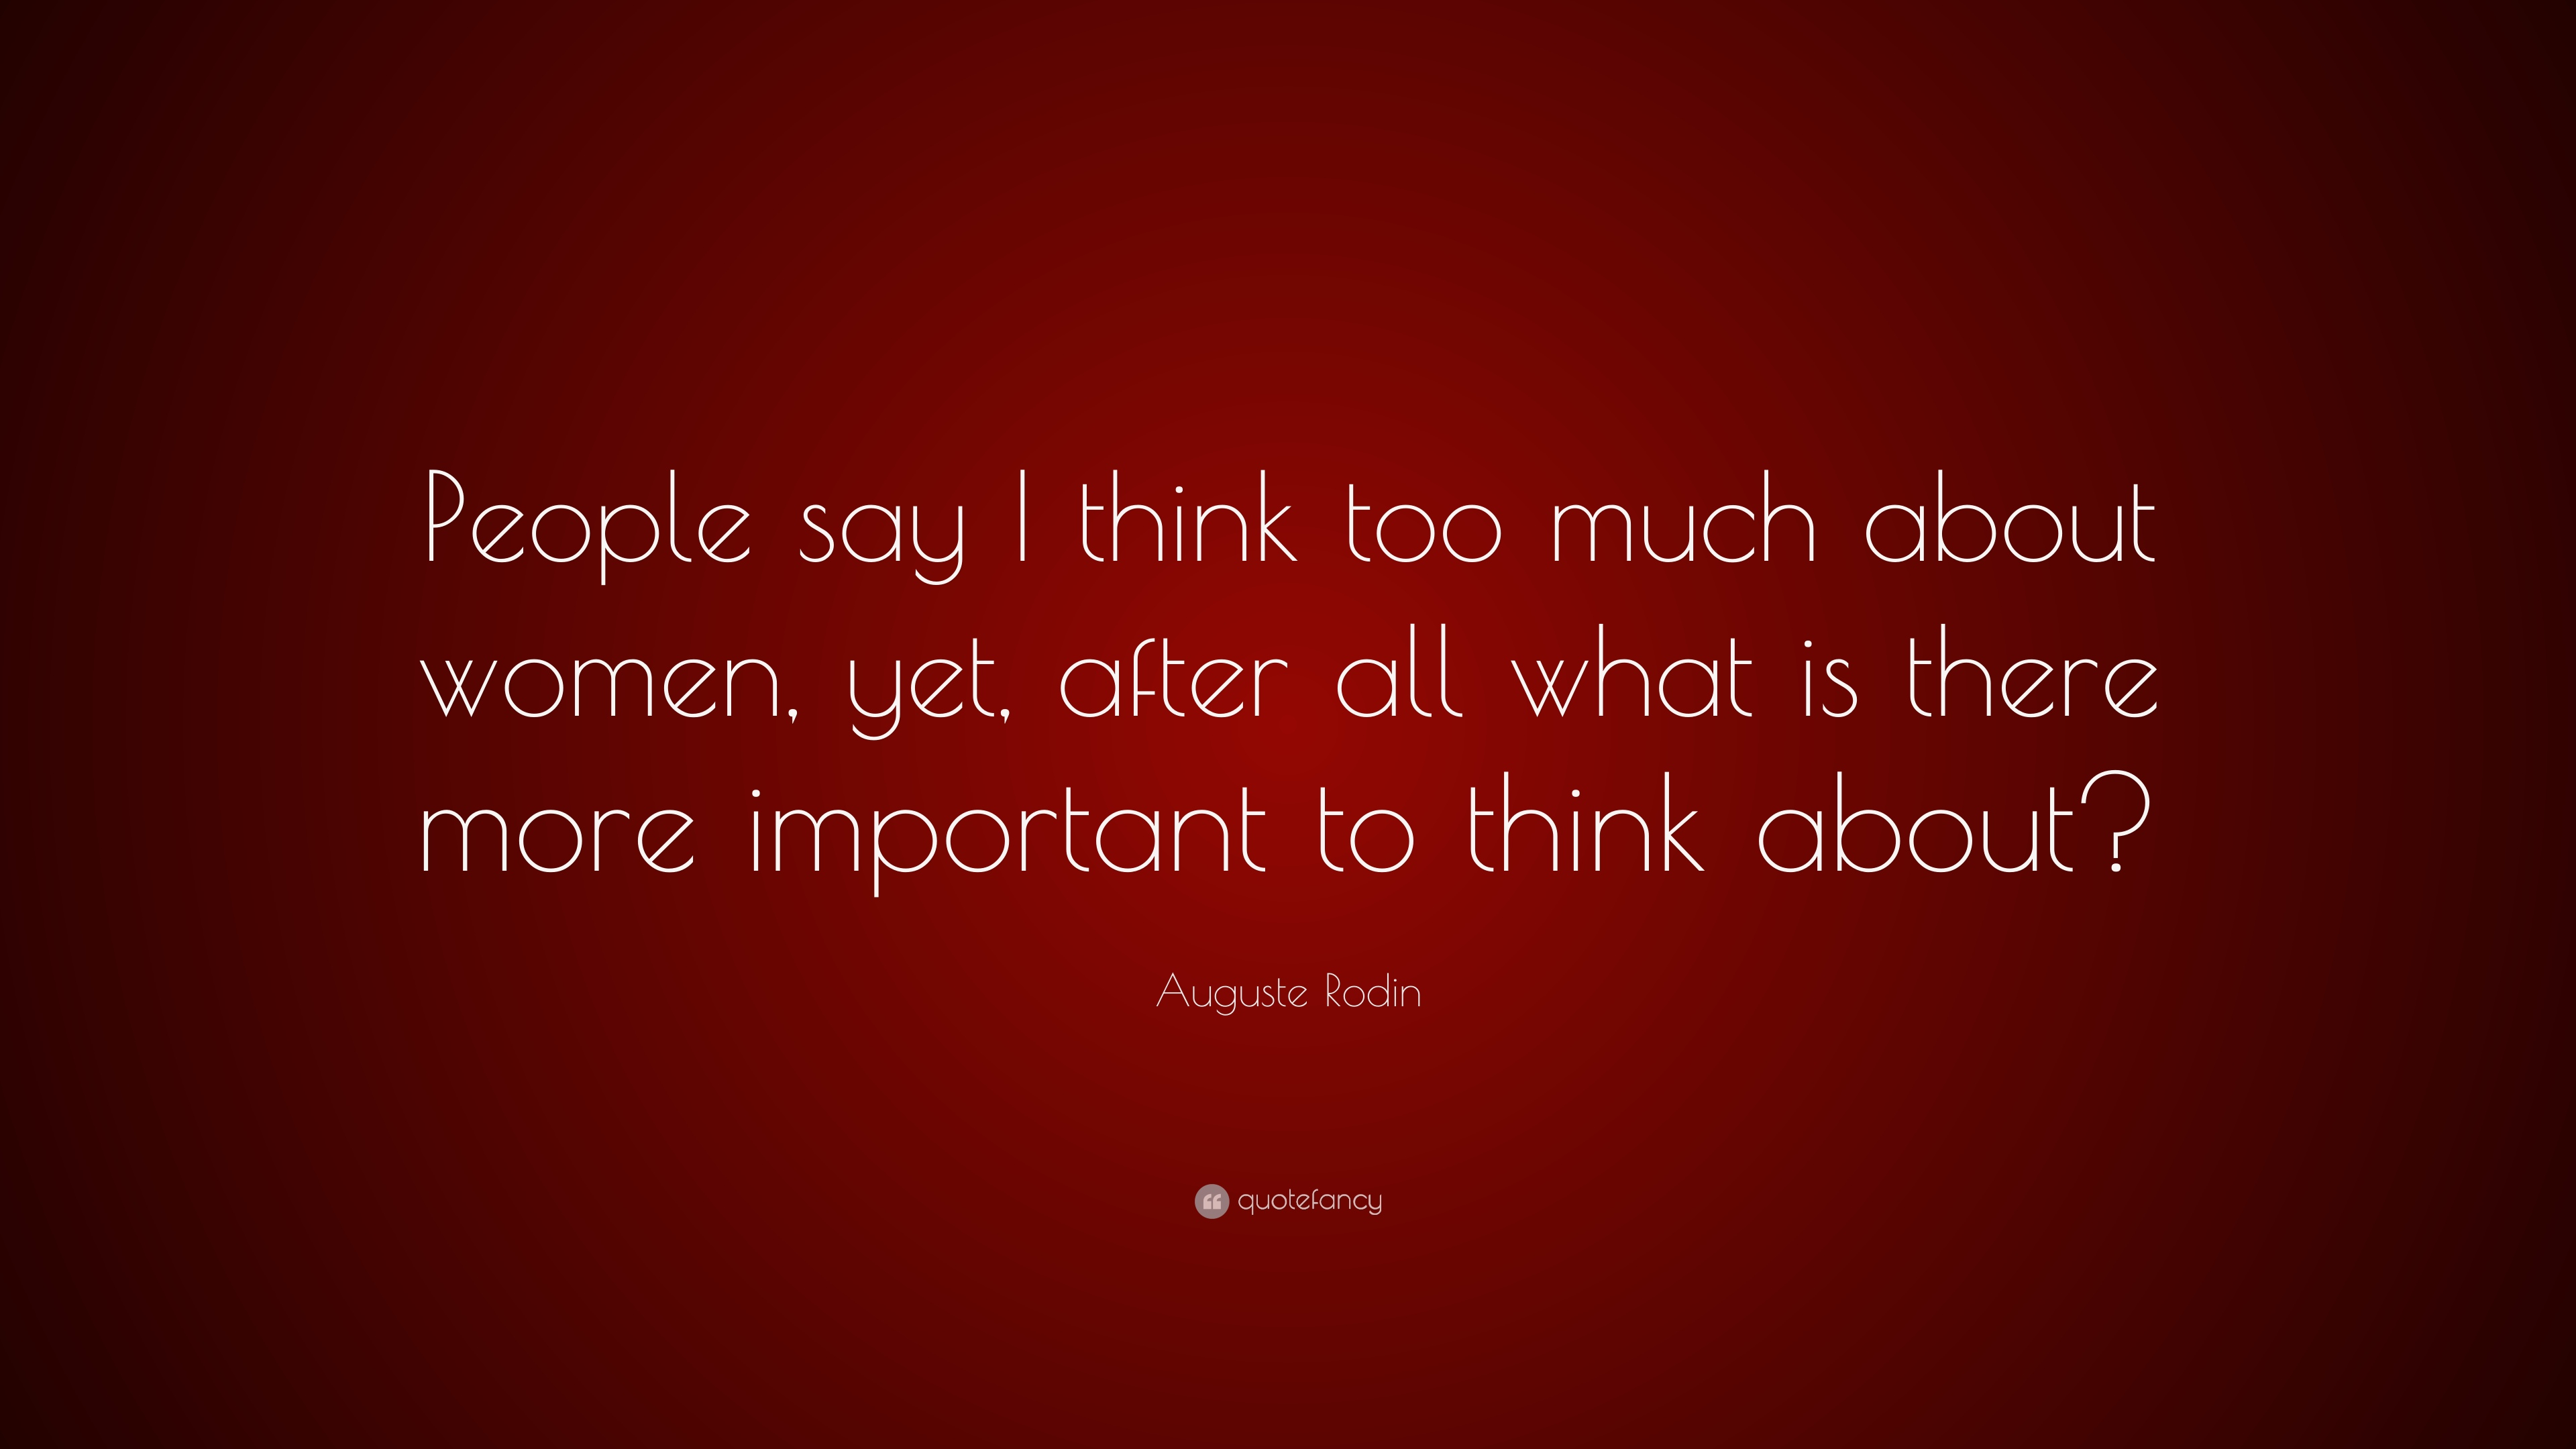 Auguste Rodin Quote People Say I Think Too Much About Women Yet